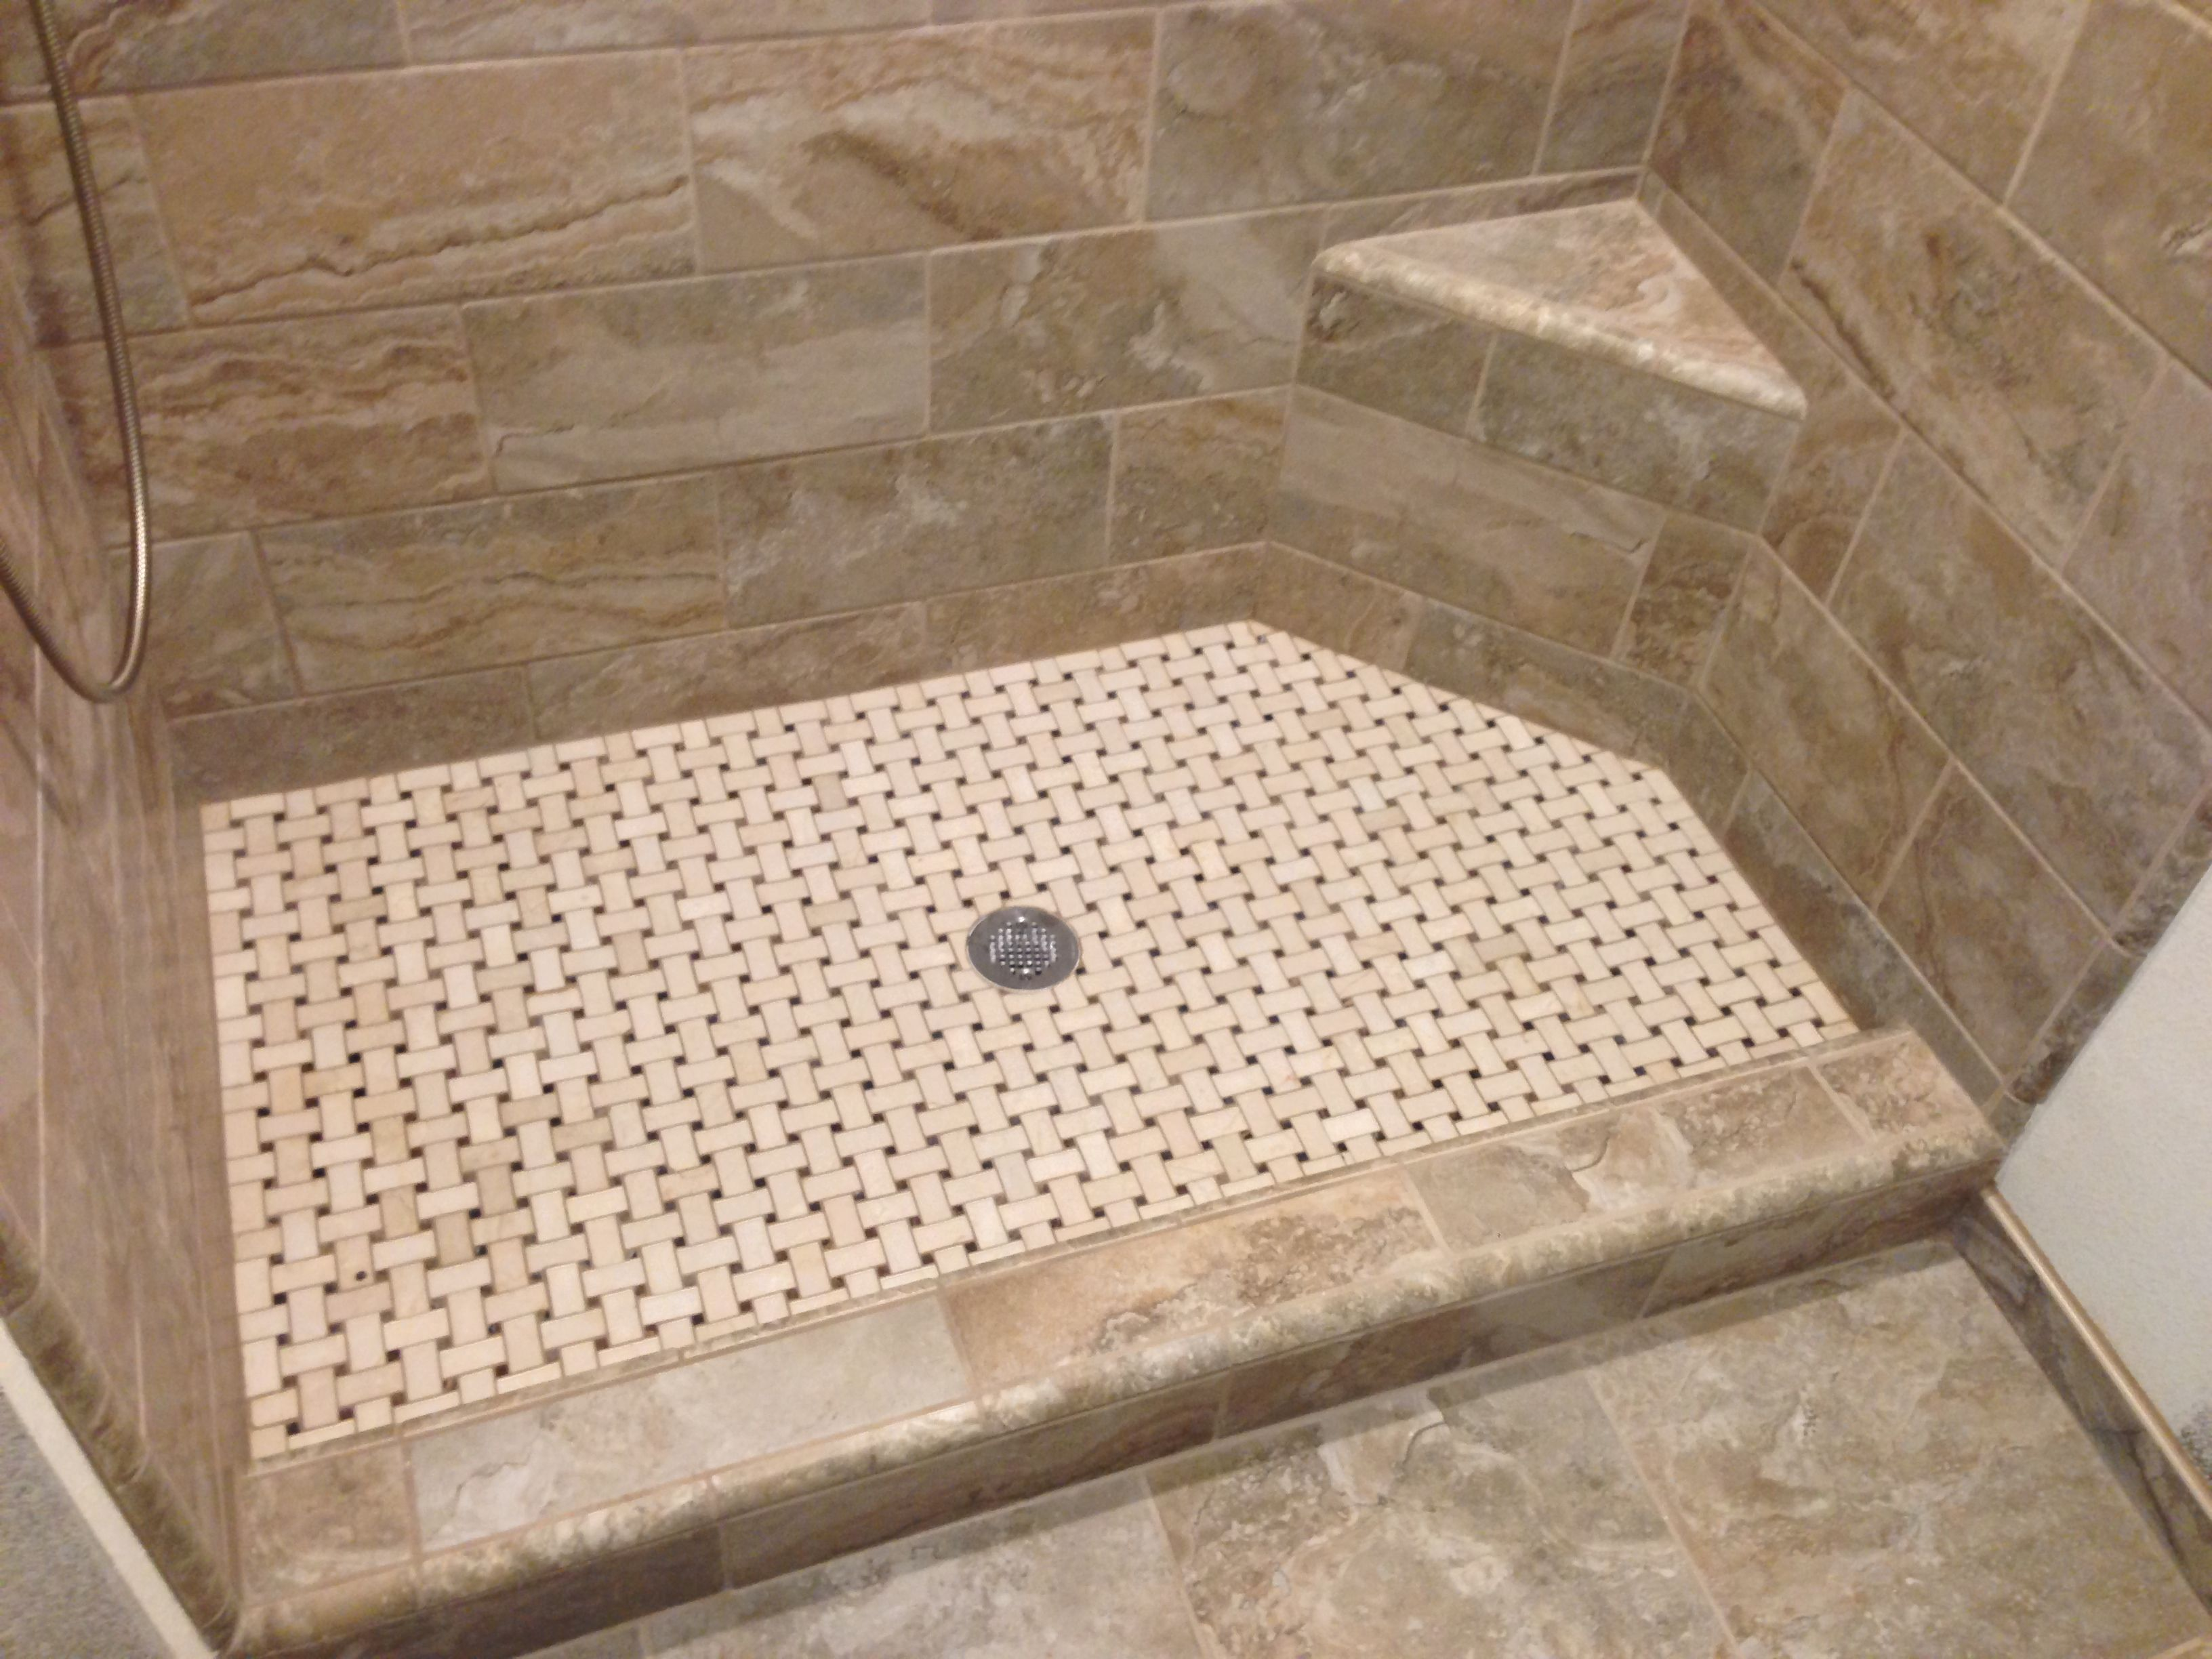 Custom Built Walk In Showers Walk In Shower We Gave Our Client The Ideas For The Tile Layout